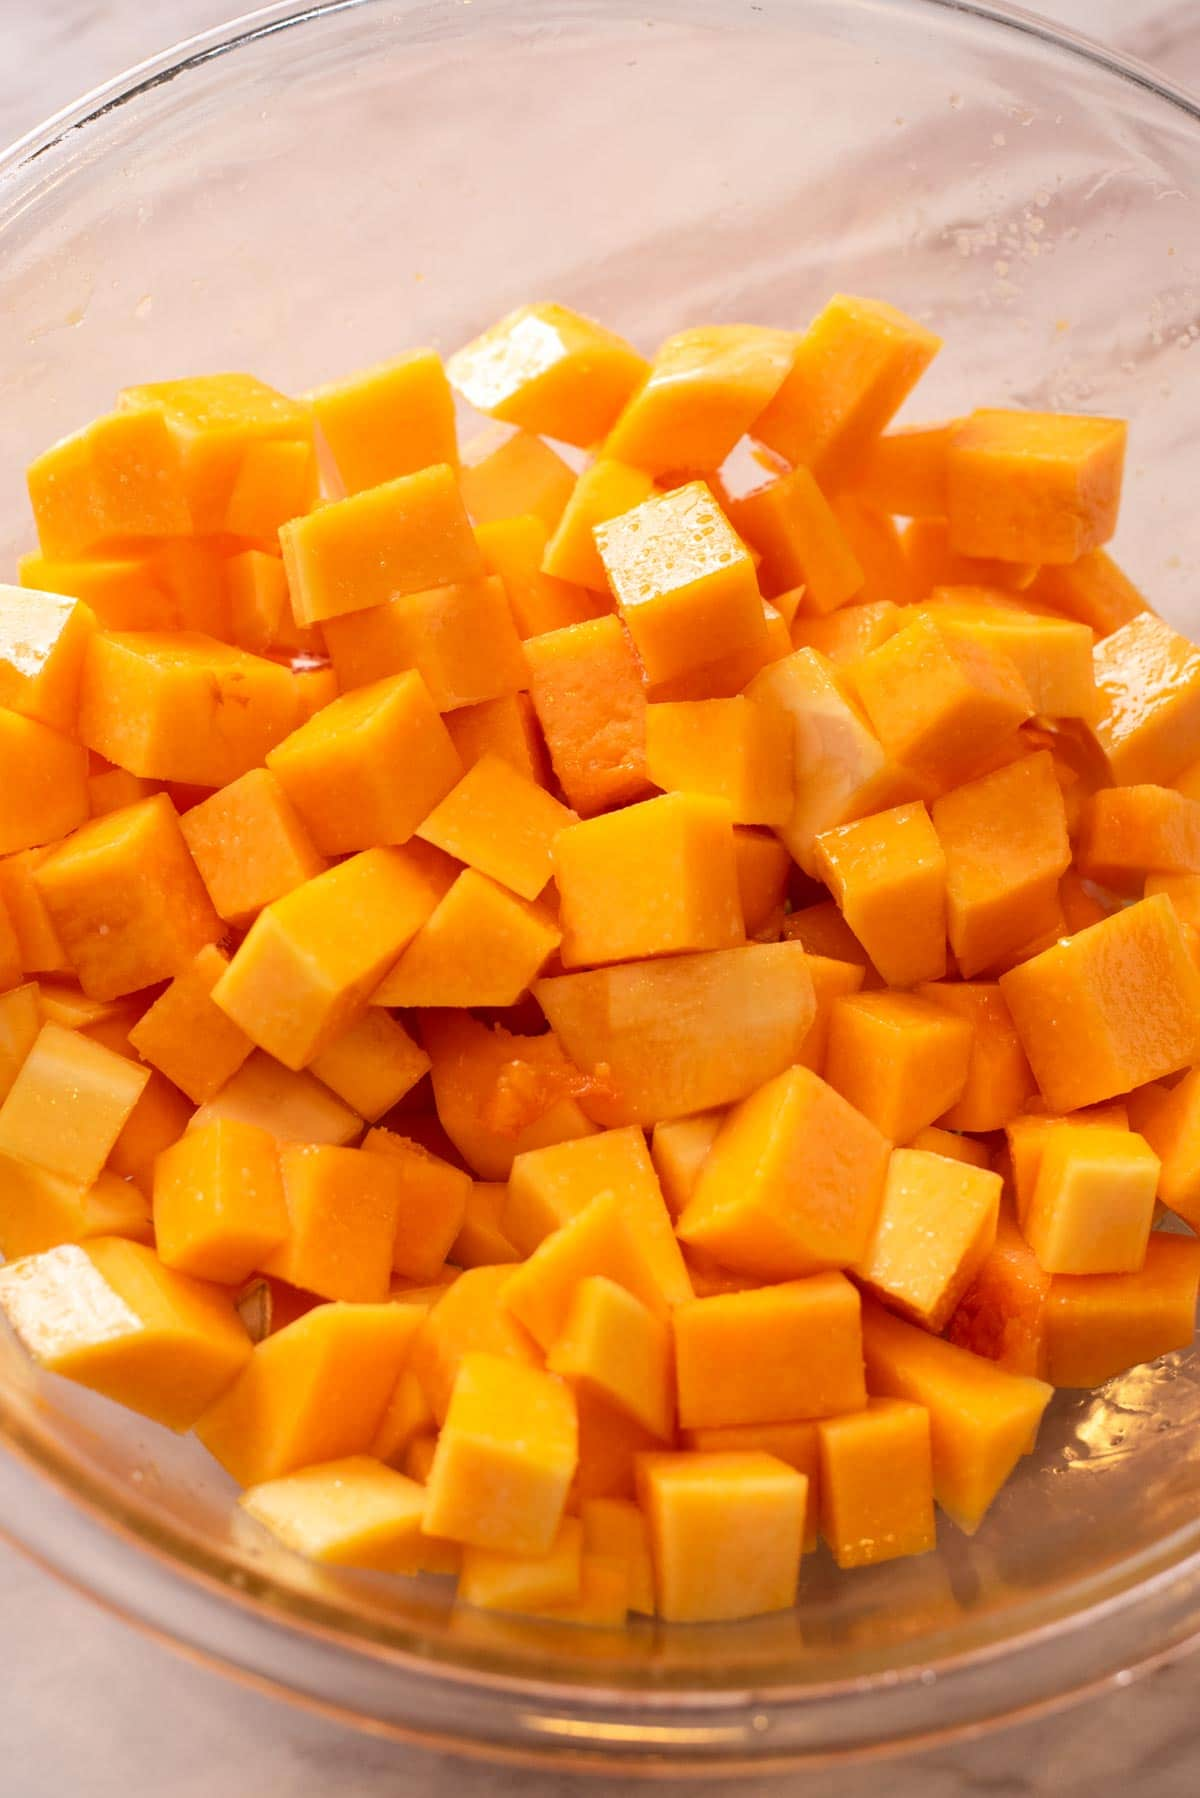 Diced butternut squash in a glass mixing bowl